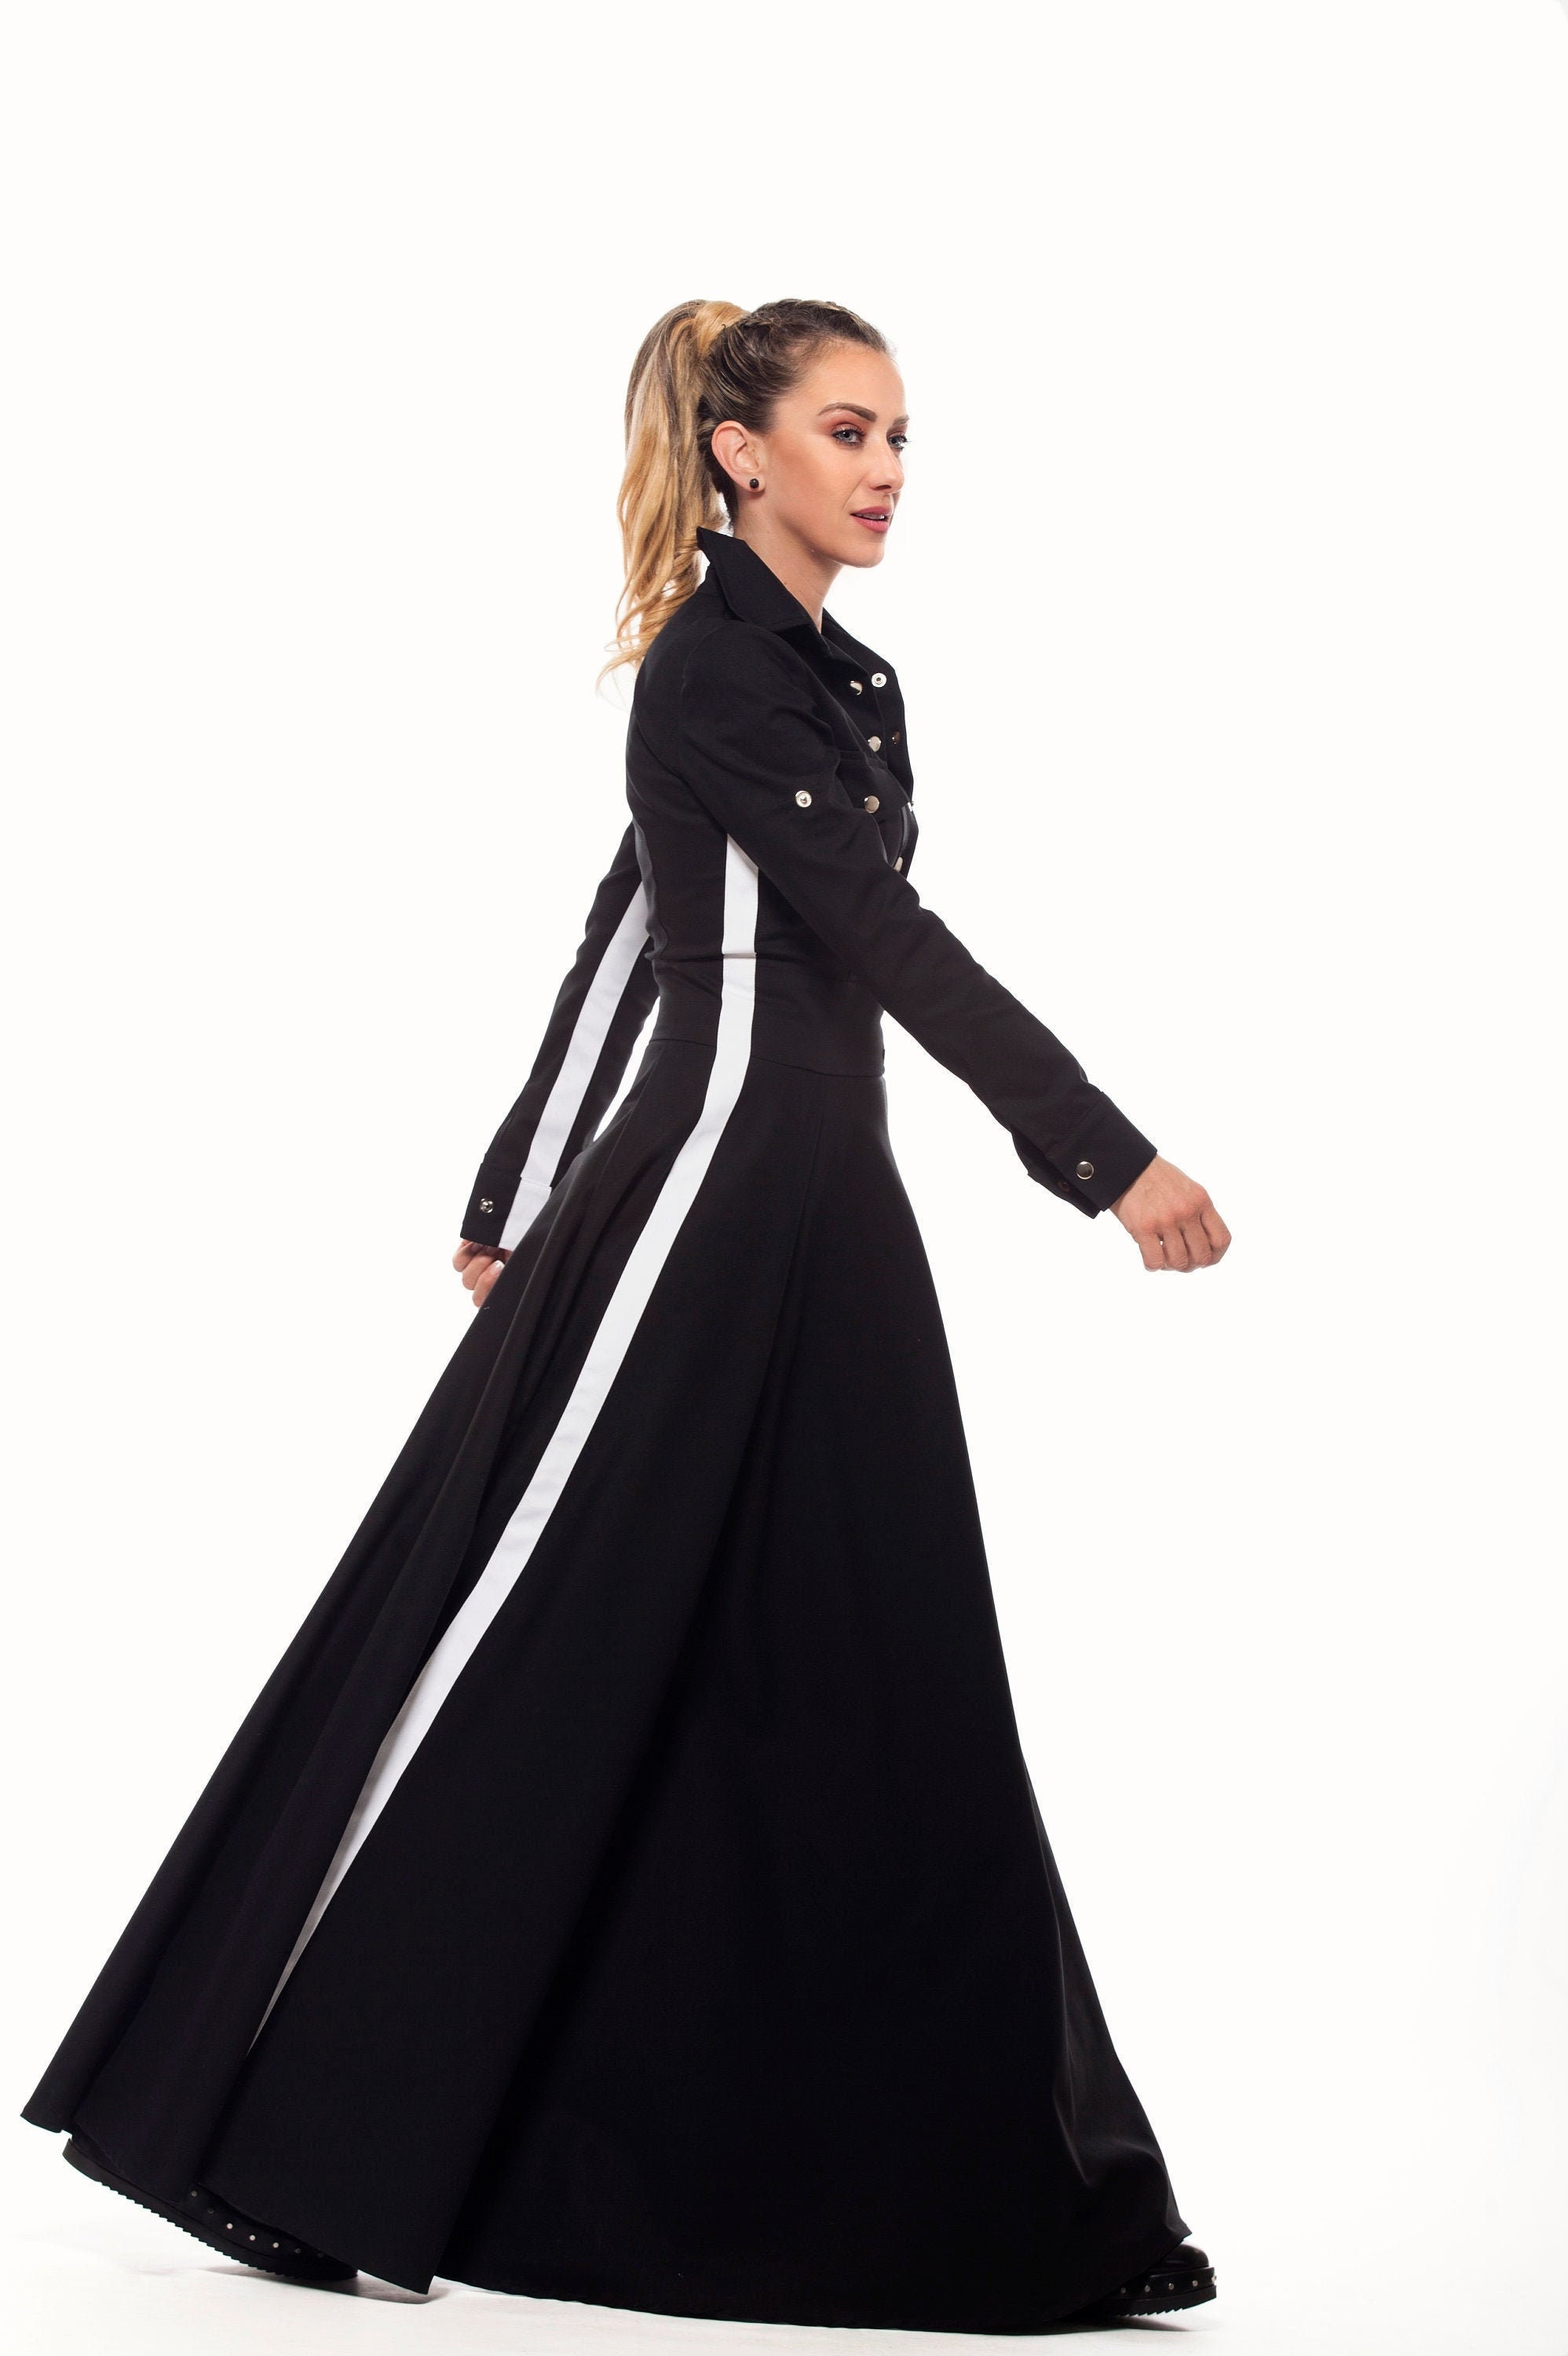 Black Shirt Dress, Maxi Dress With Sleeves, Plus Size Clothing, Fit And Flare Dress,Long Black Dress,Striped Gothic Dress,Black Cotton Dress